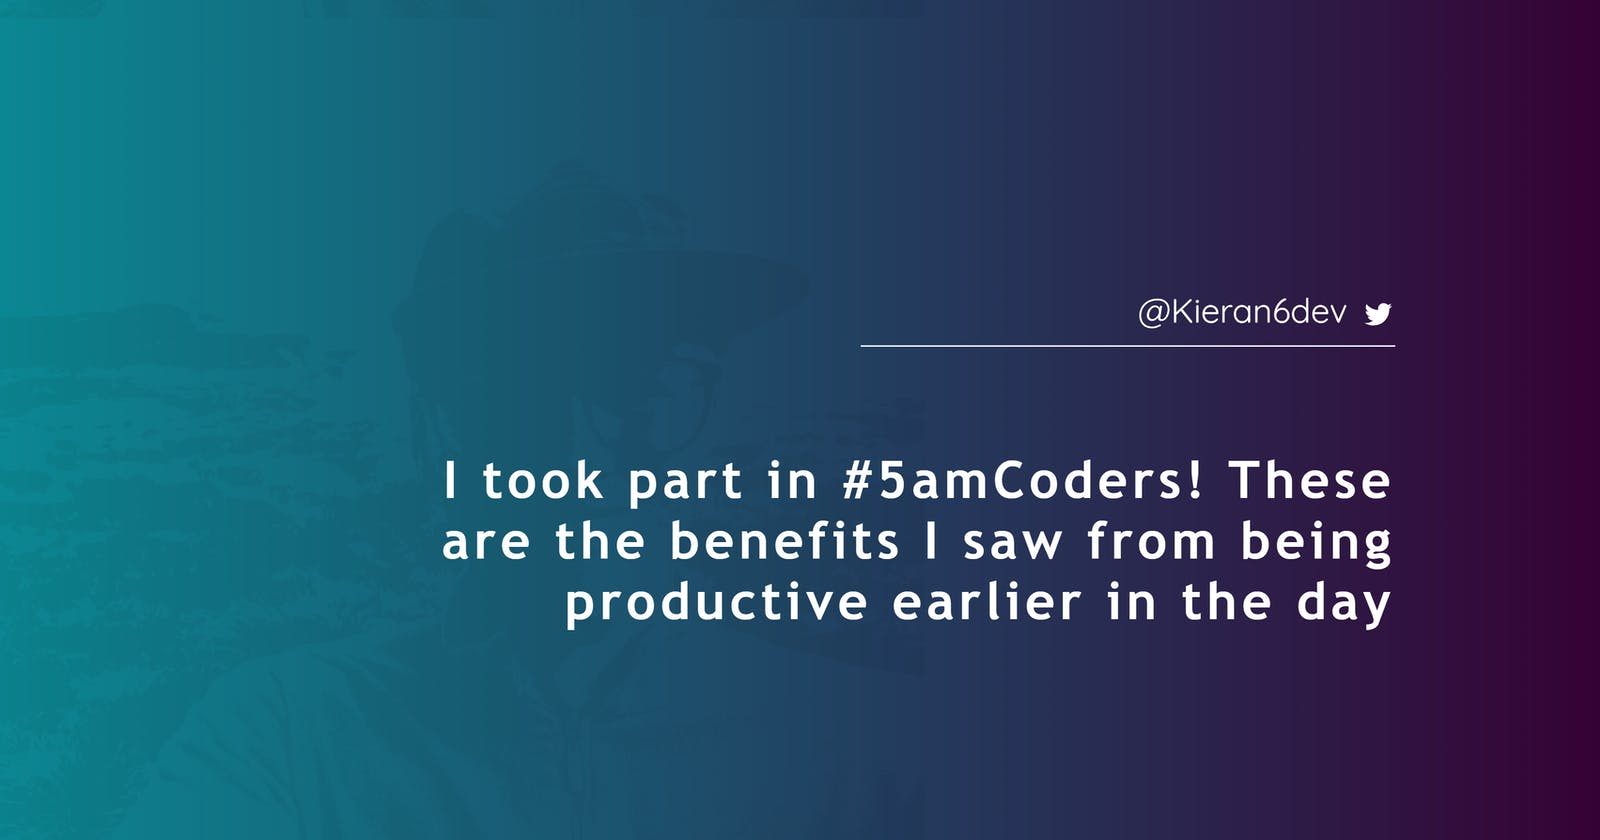 I took part in #5amCoders! These are the benefits I saw from being productive earlier in the day